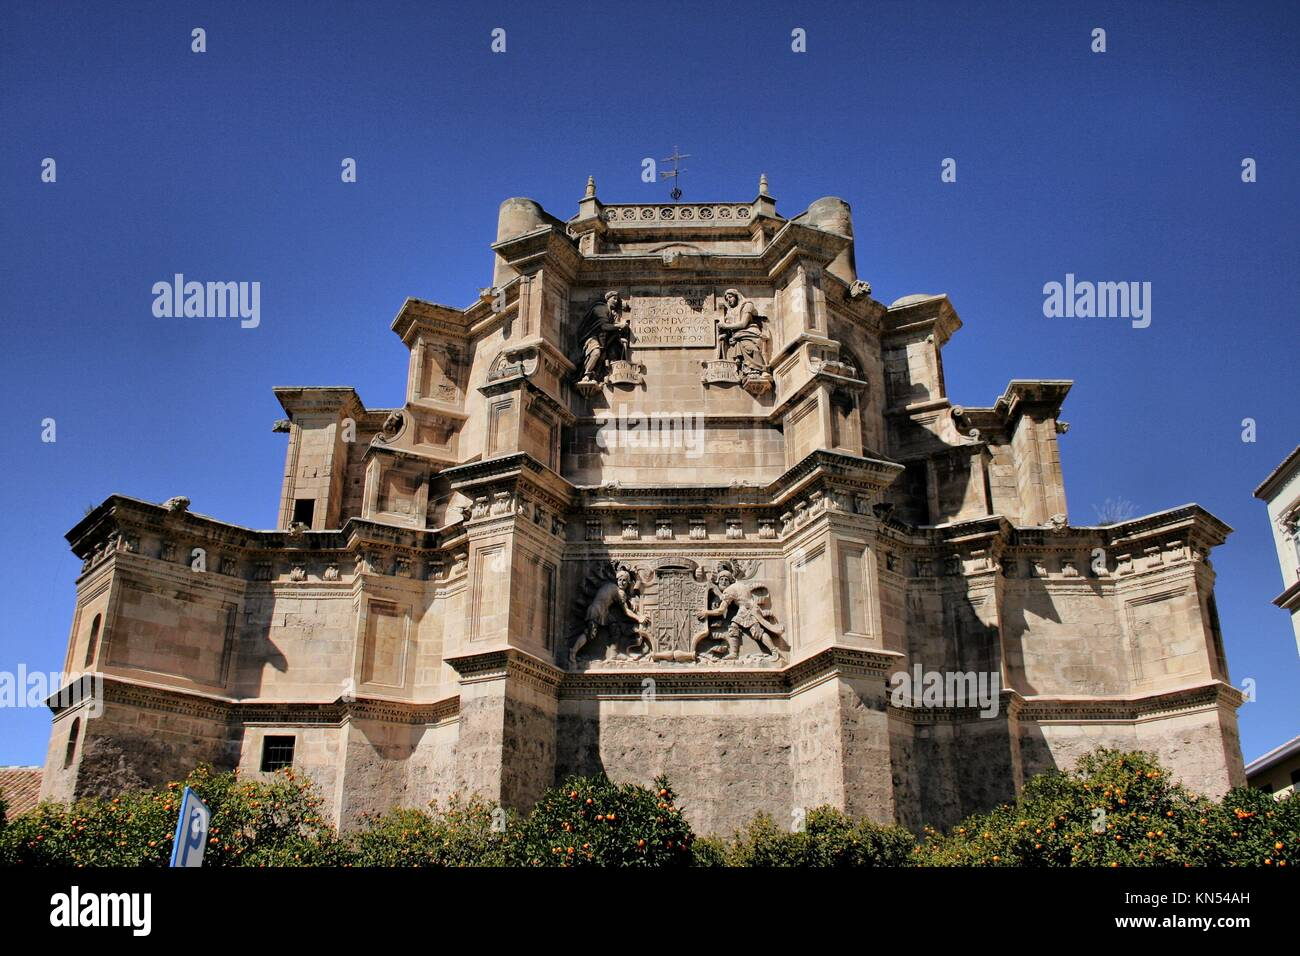 Detail of Monastery and Church of Saint Jerome among orange trees in Granada, Spain. - Stock Image